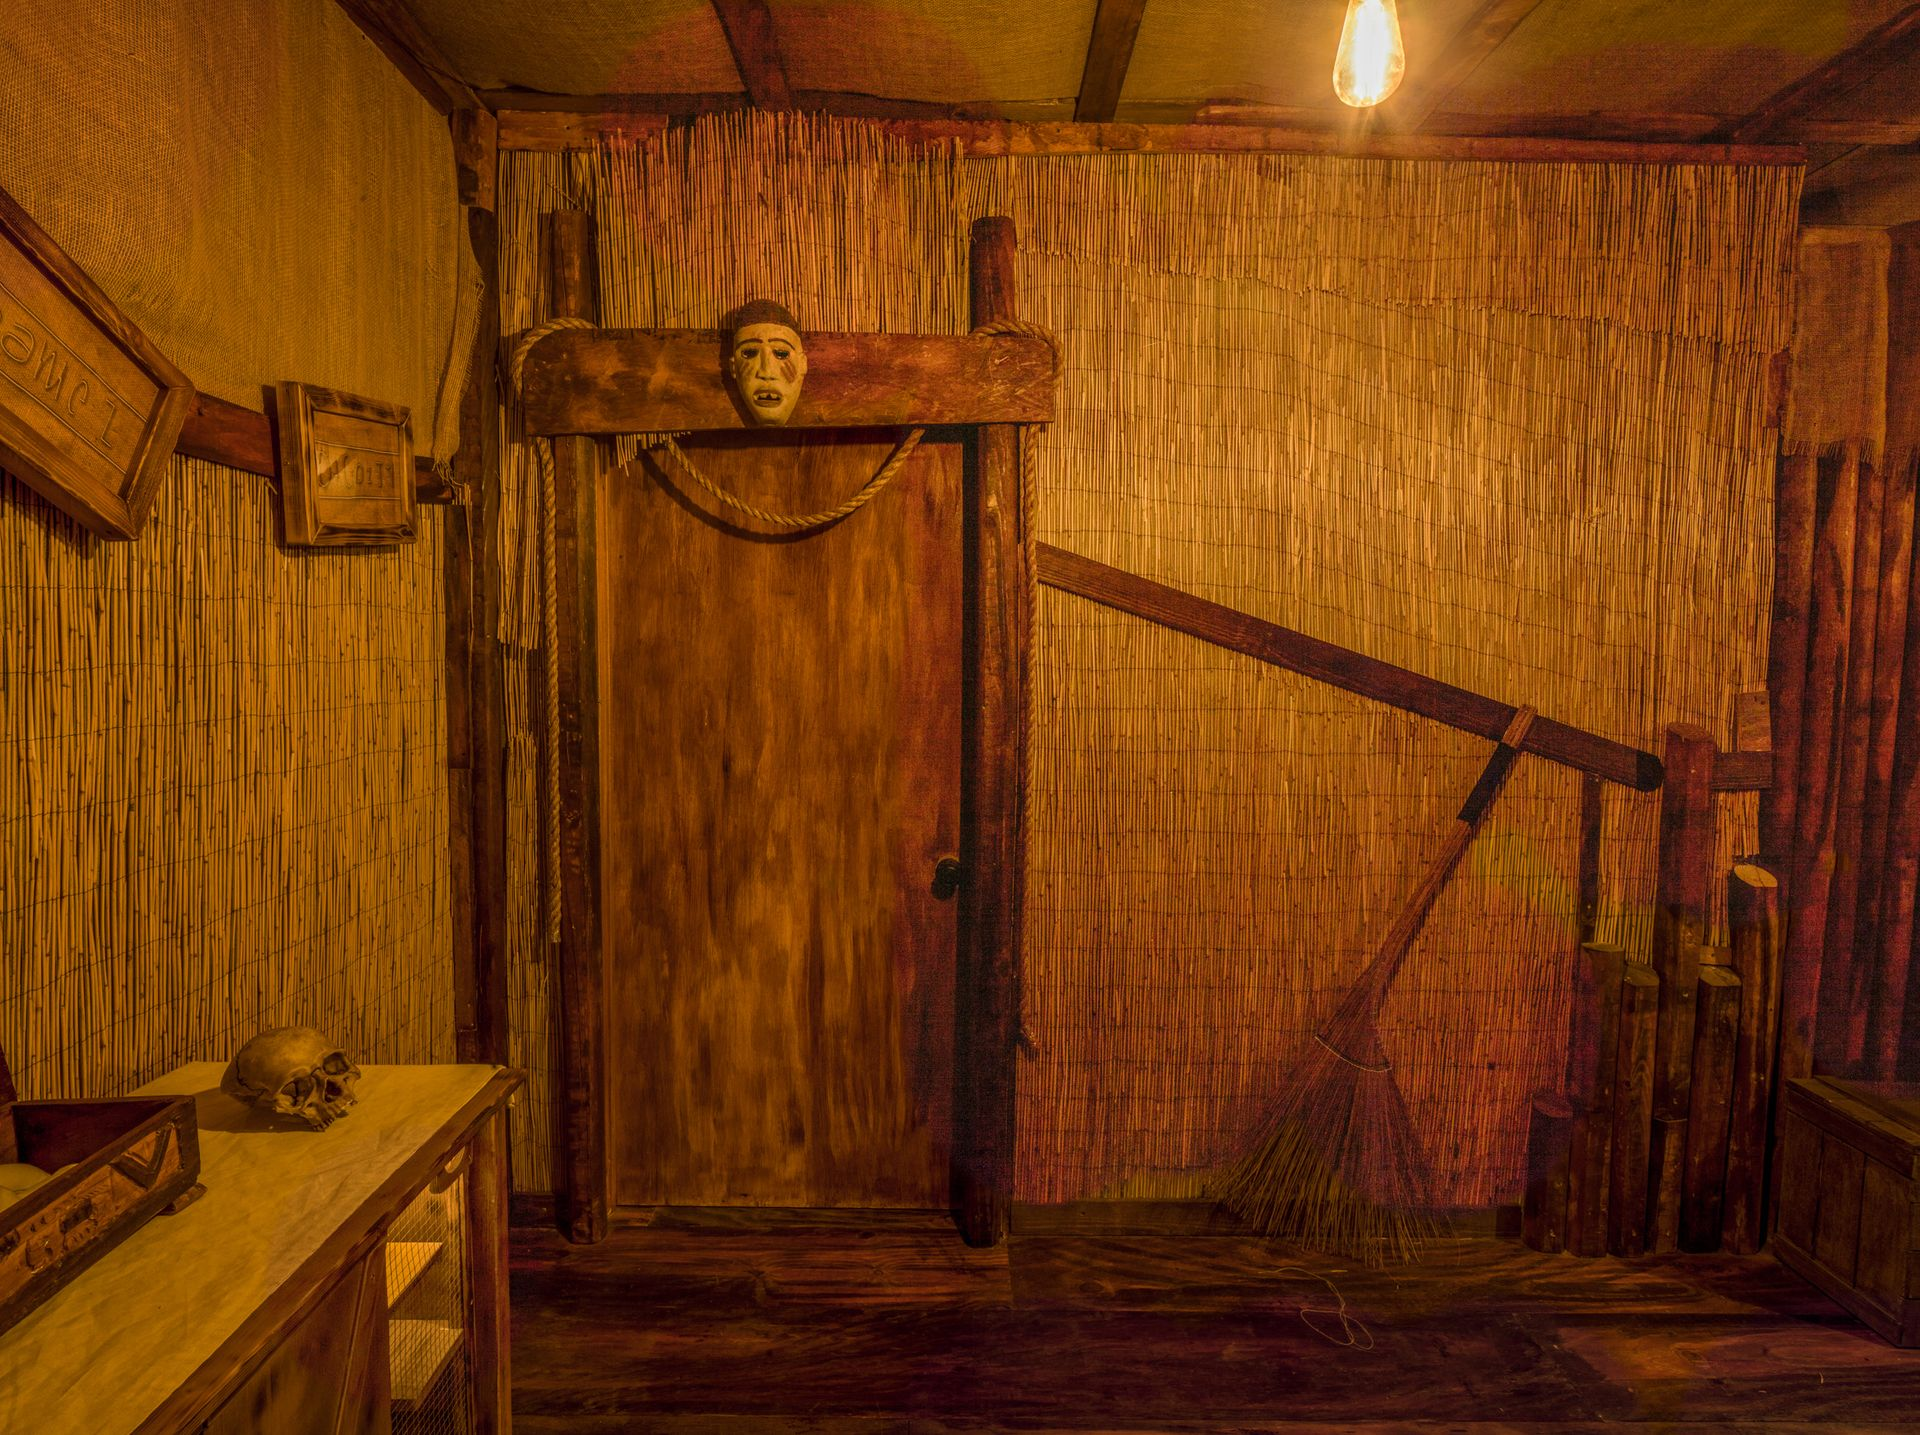 Voodoo Escape Room - Voodoo Witch Hut